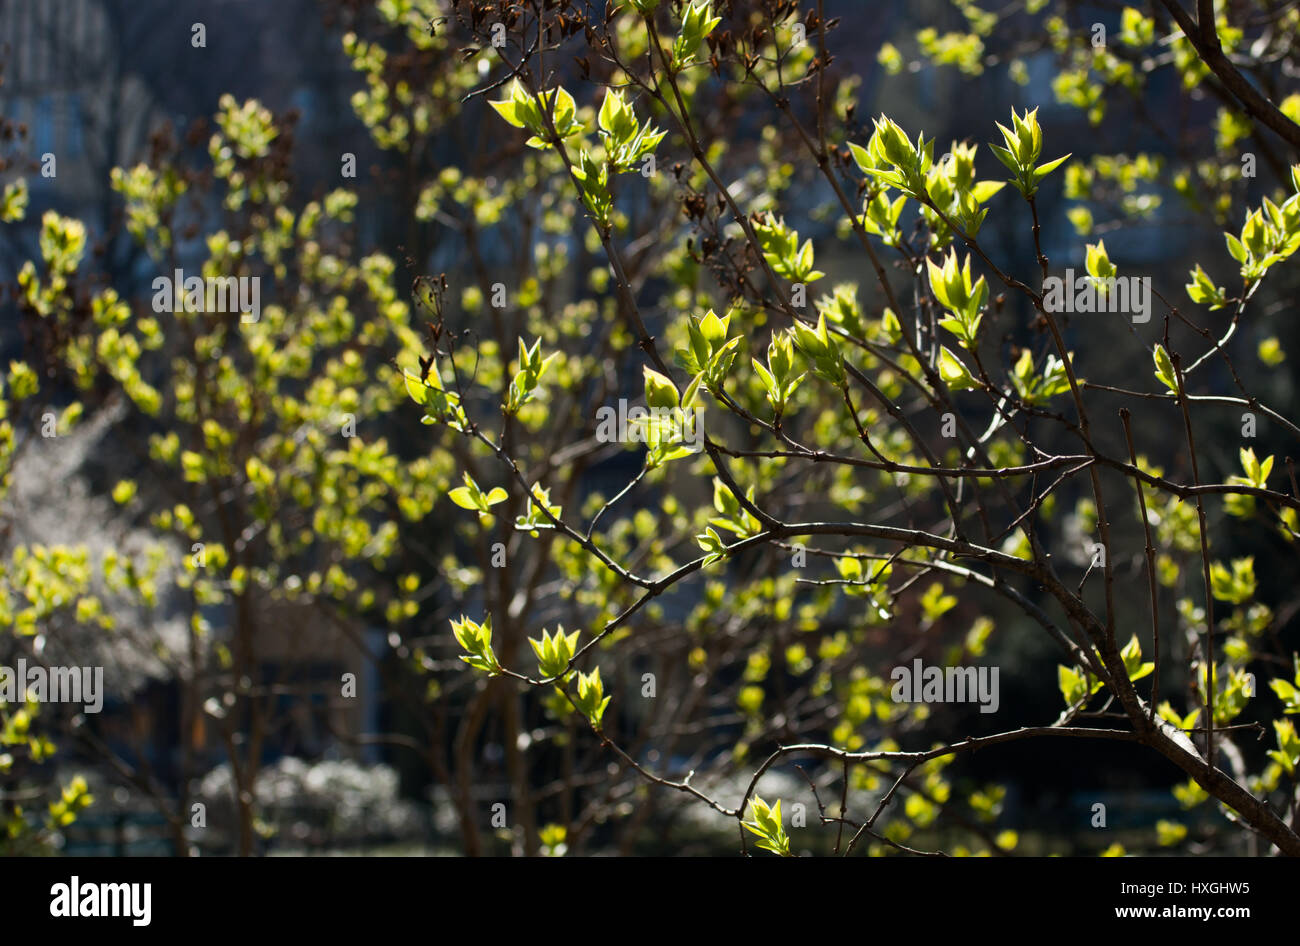 Impressions from the public parkland in Berlin-Wilmersdorf. Flowers, buds in the morning sun. - Stock Image